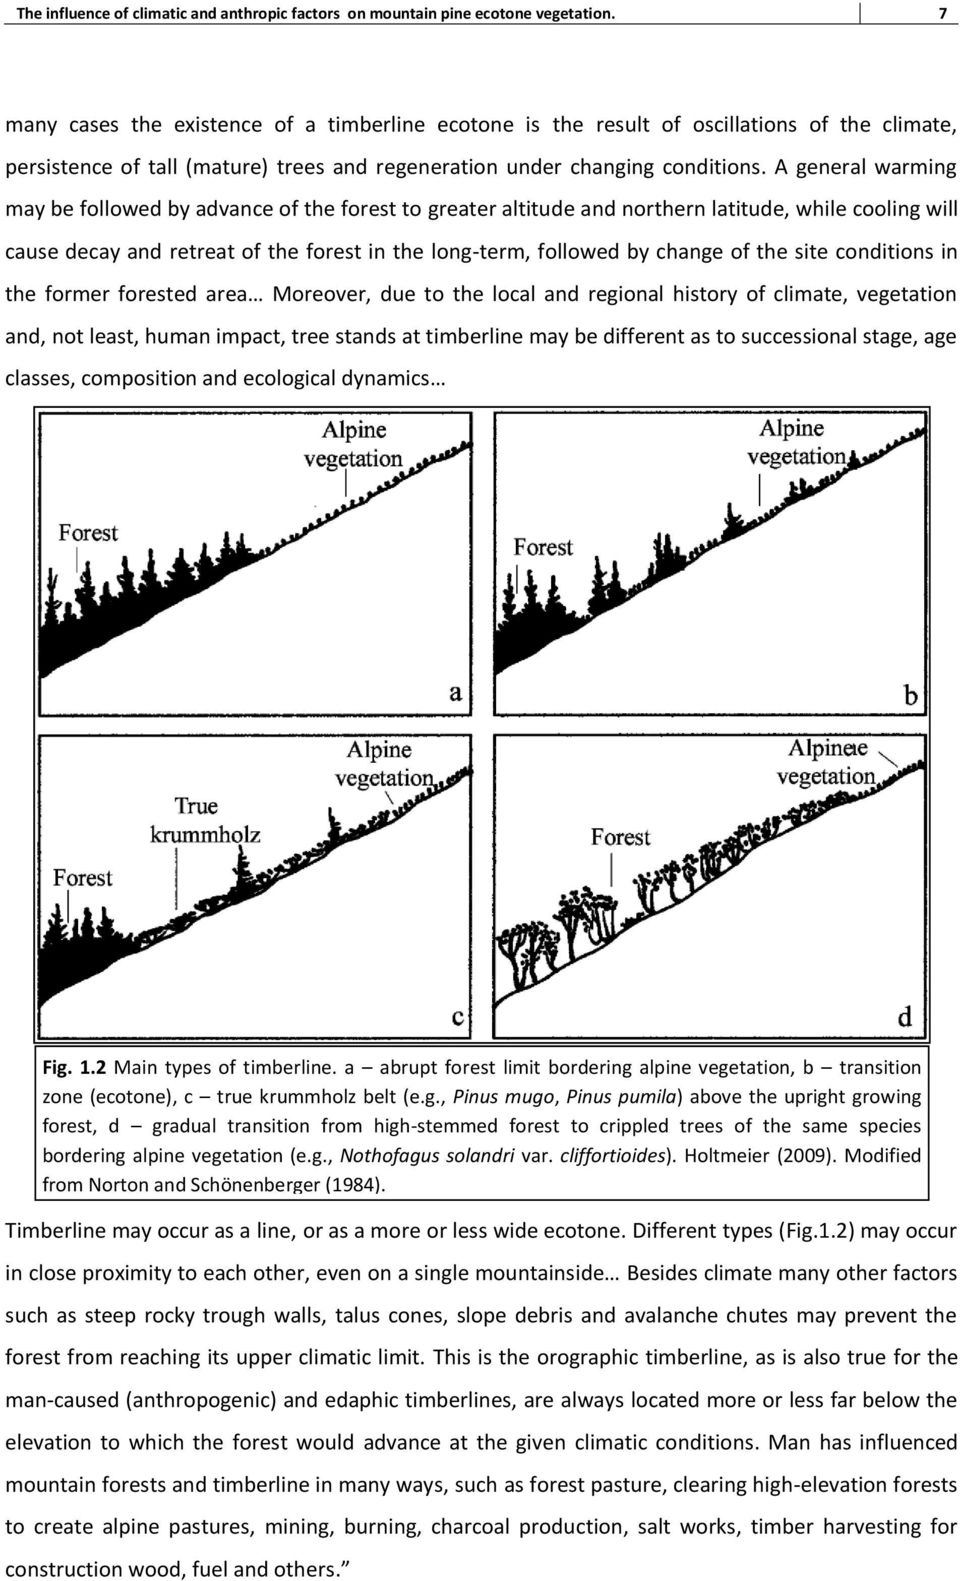 A general warming may be followed by advance of the forest to greater altitude and northern latitude, while cooling will cause decay and retreat of the forest in the long-term, followed by change of